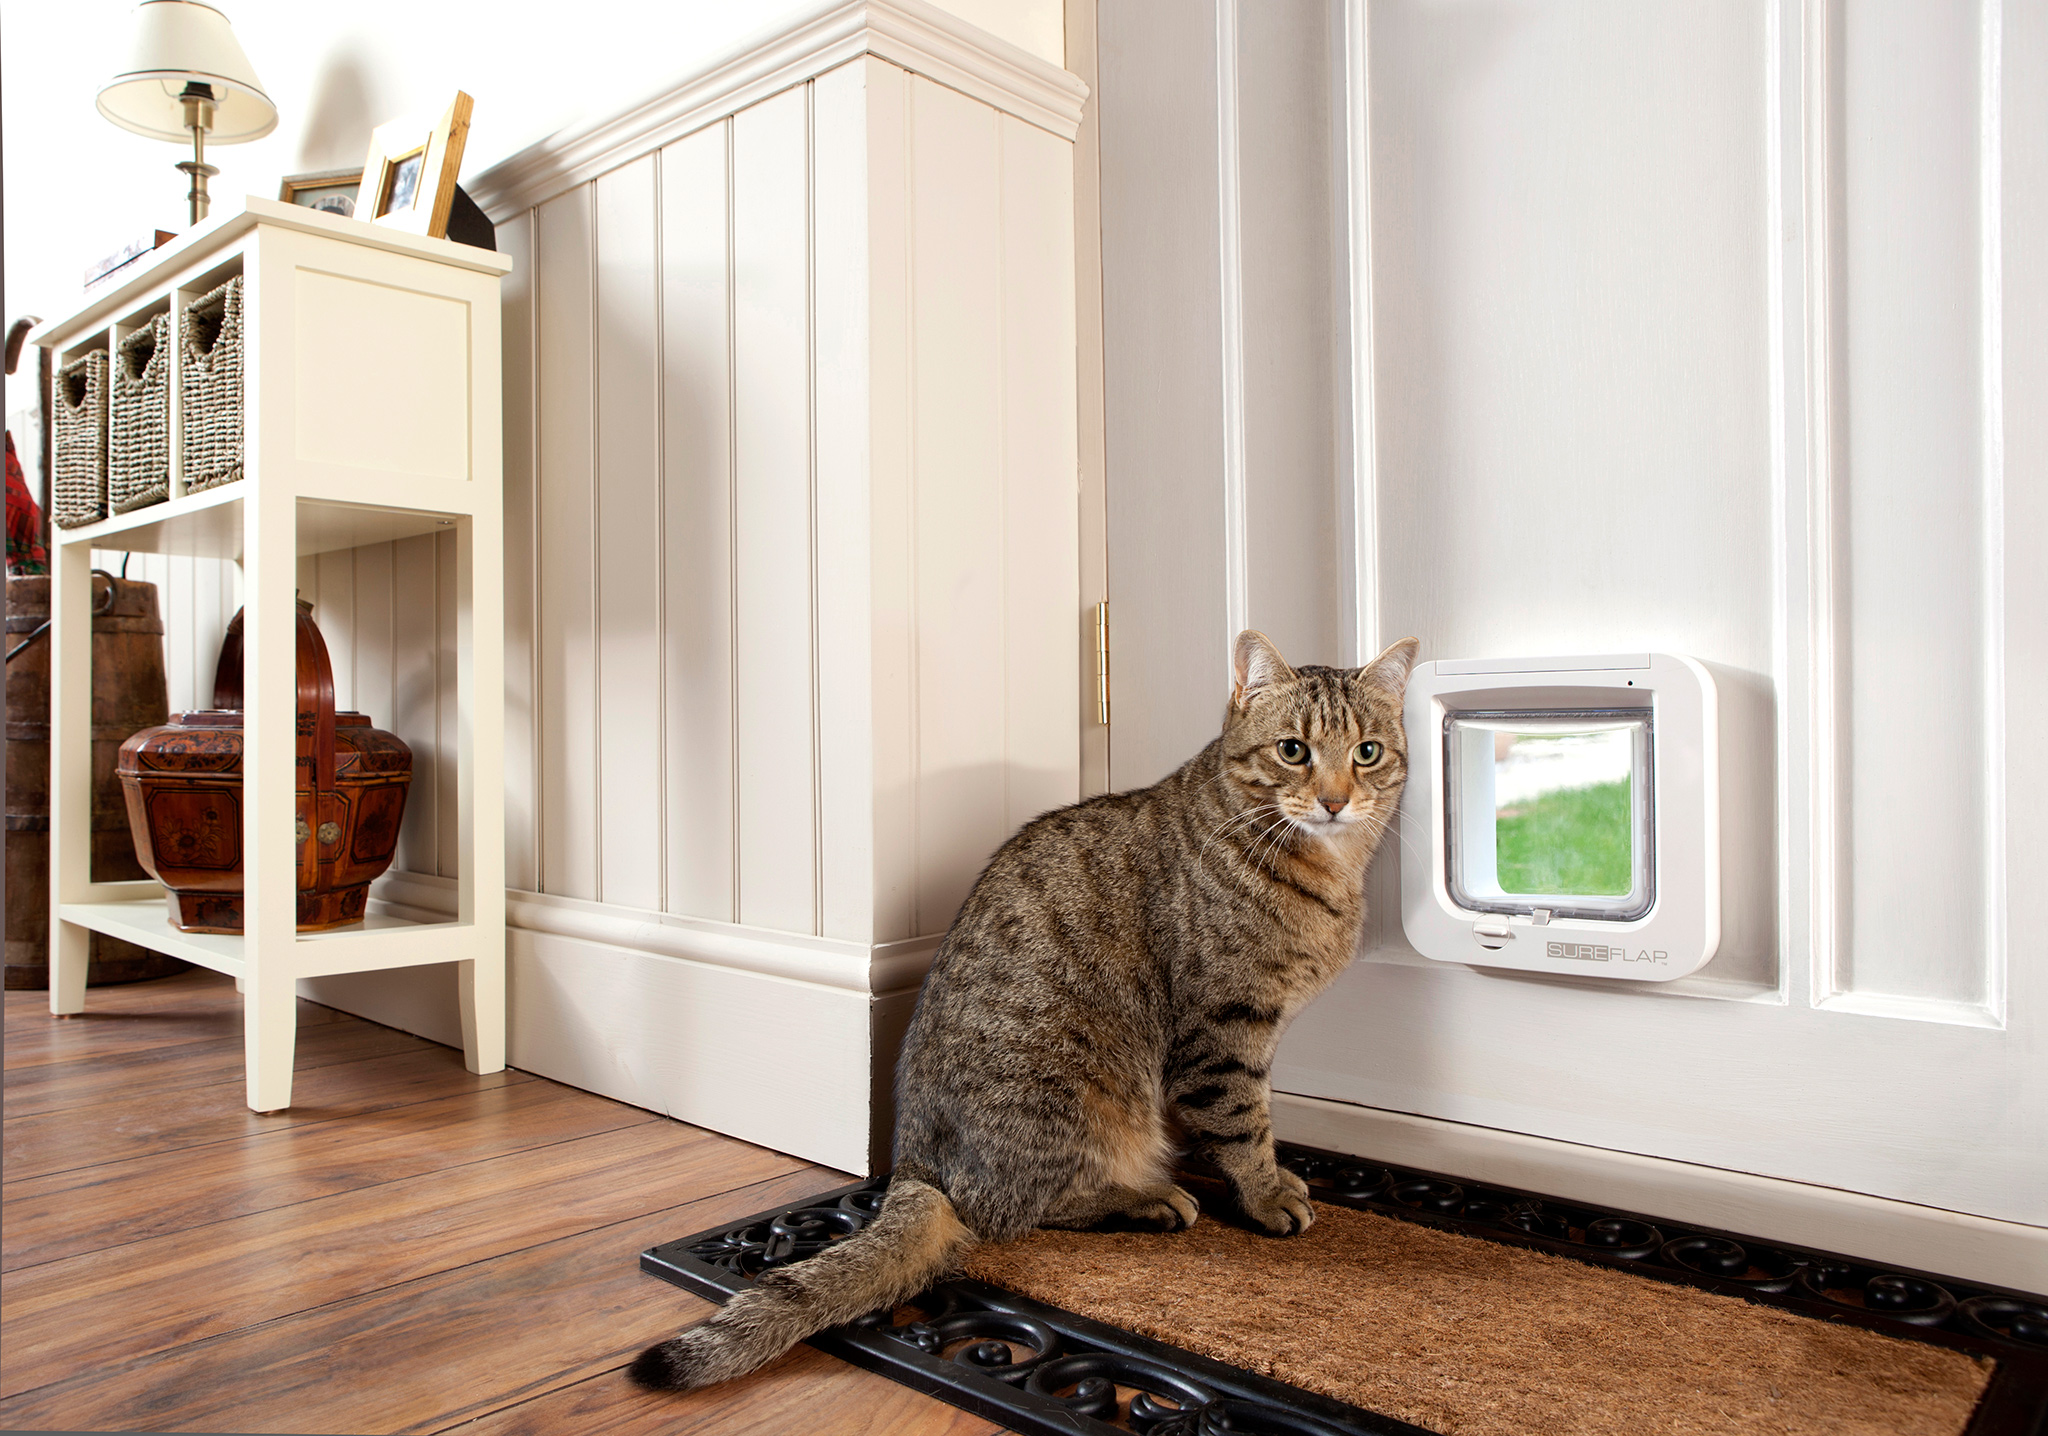 & The SureFlap Microchip Cat Door - Keep Unwanted Cats Out! Pezcame.Com